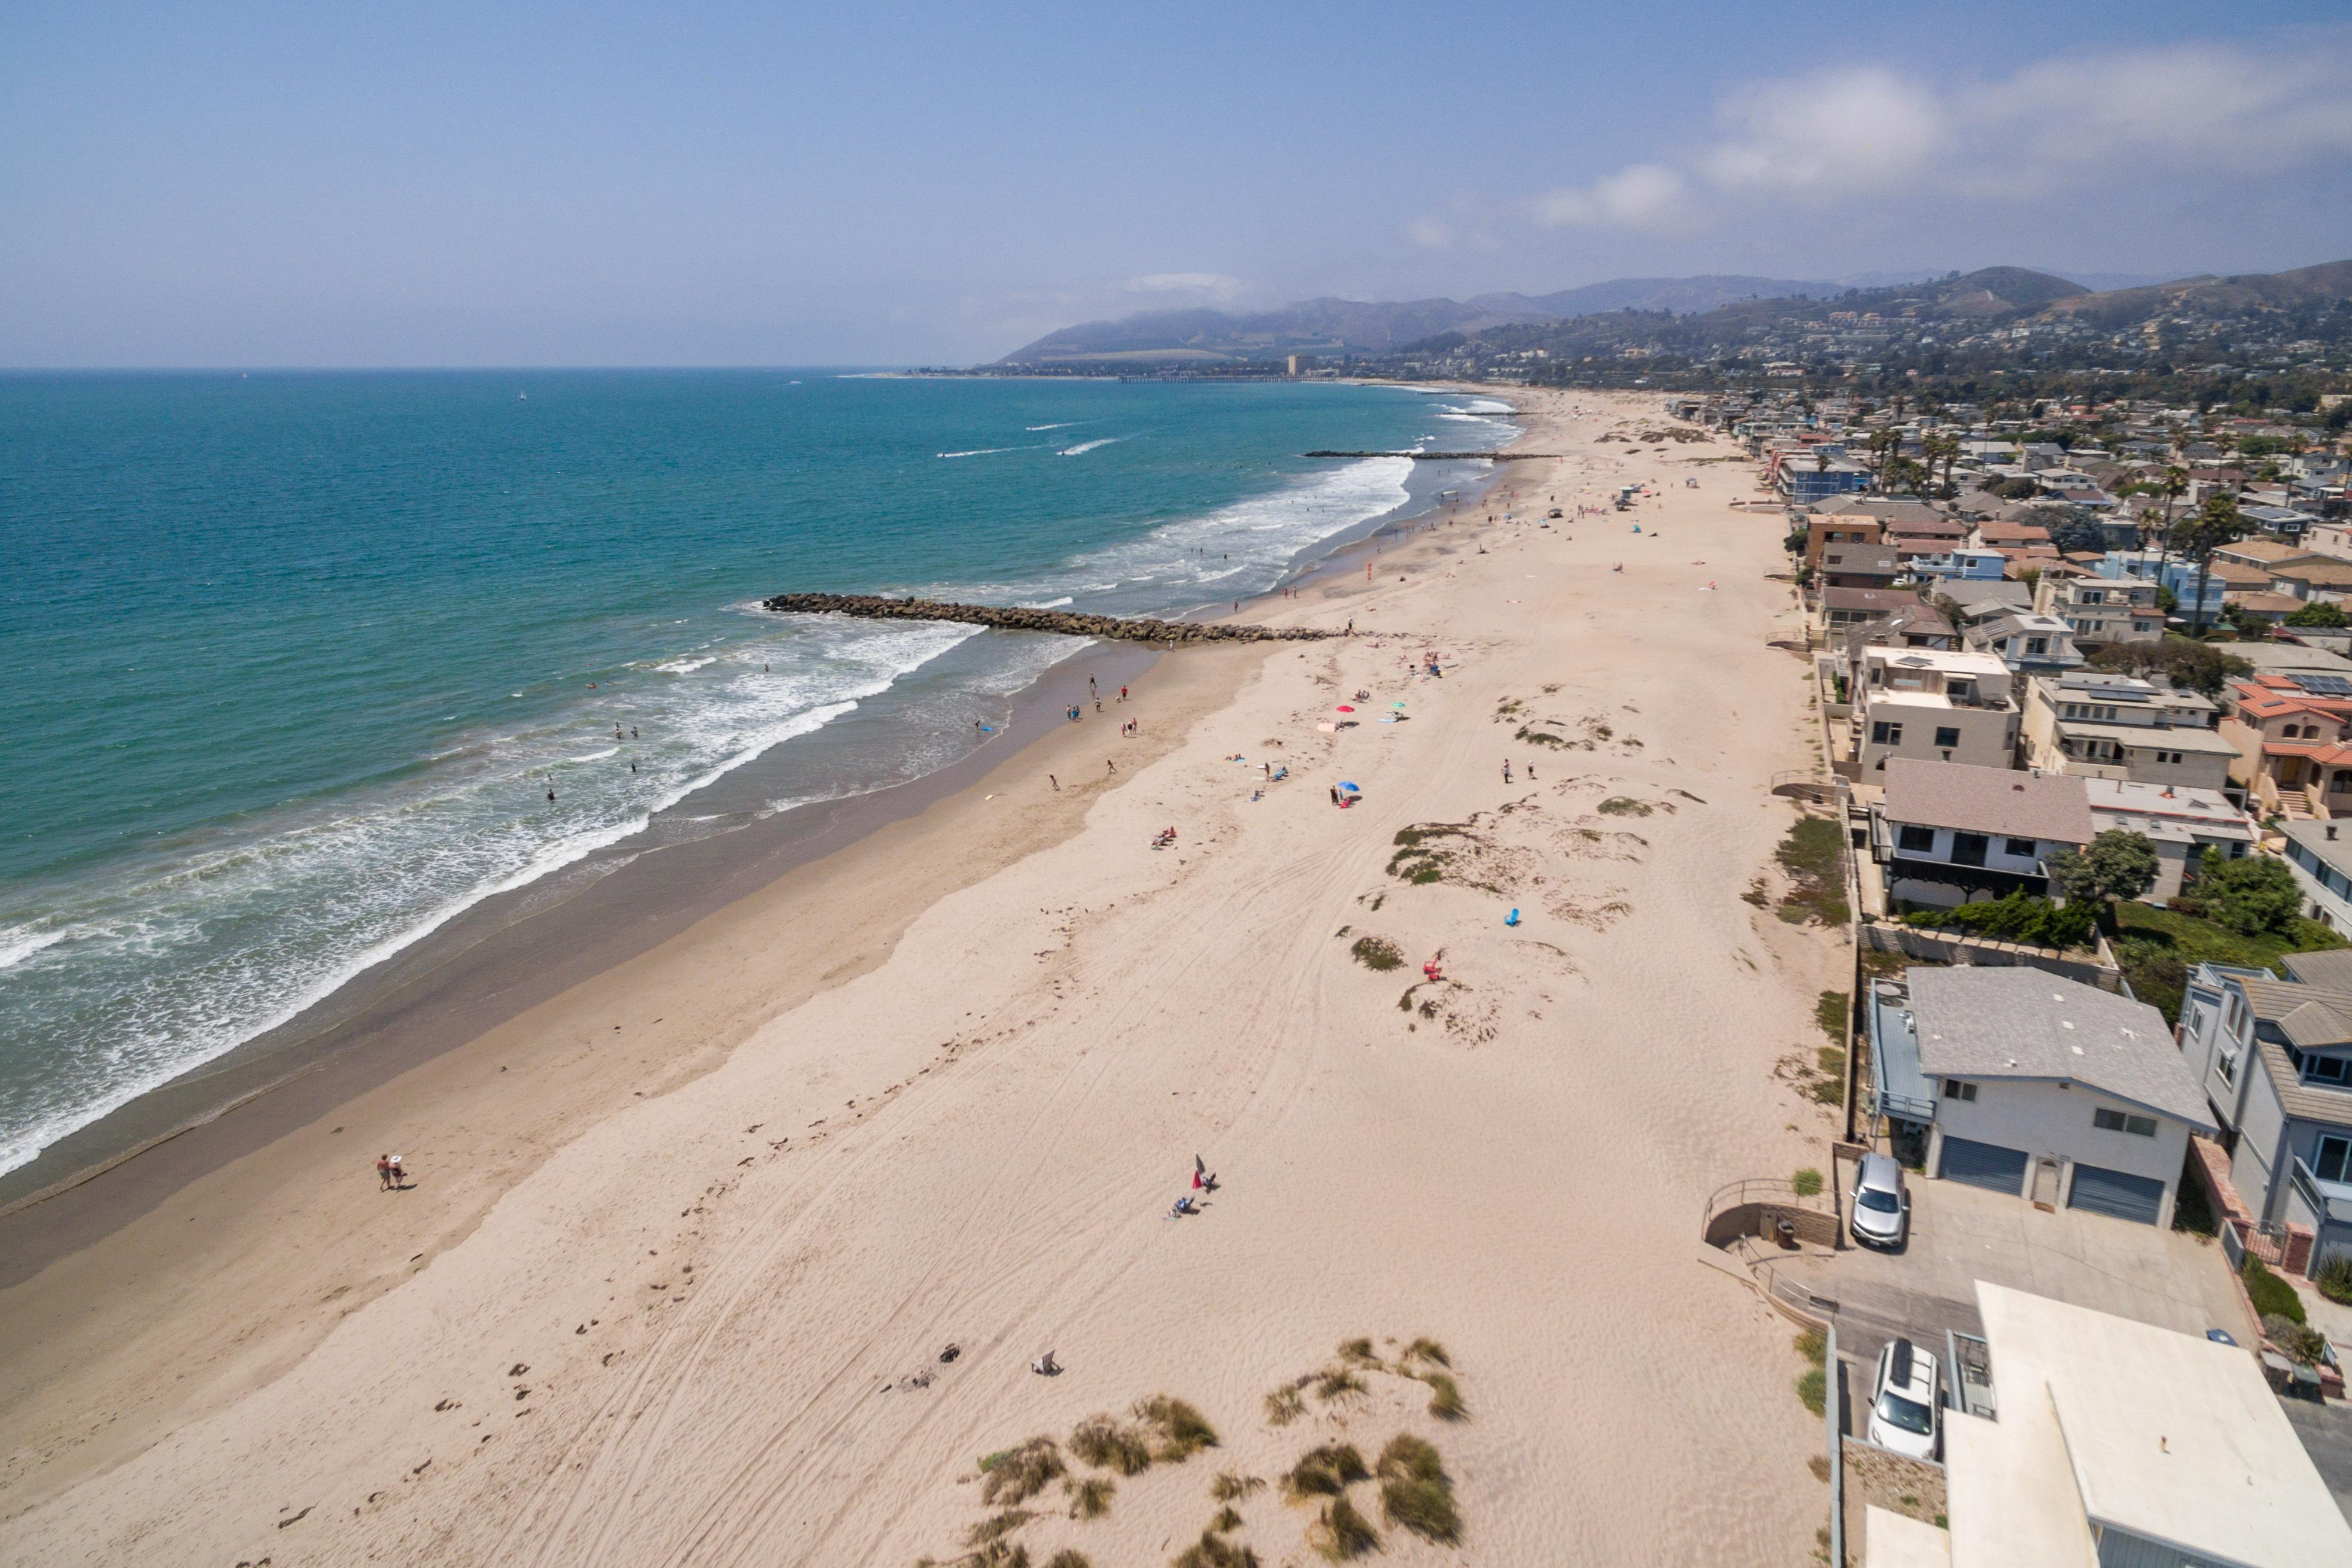 Dreamy beach days are waiting for you in Ventura.